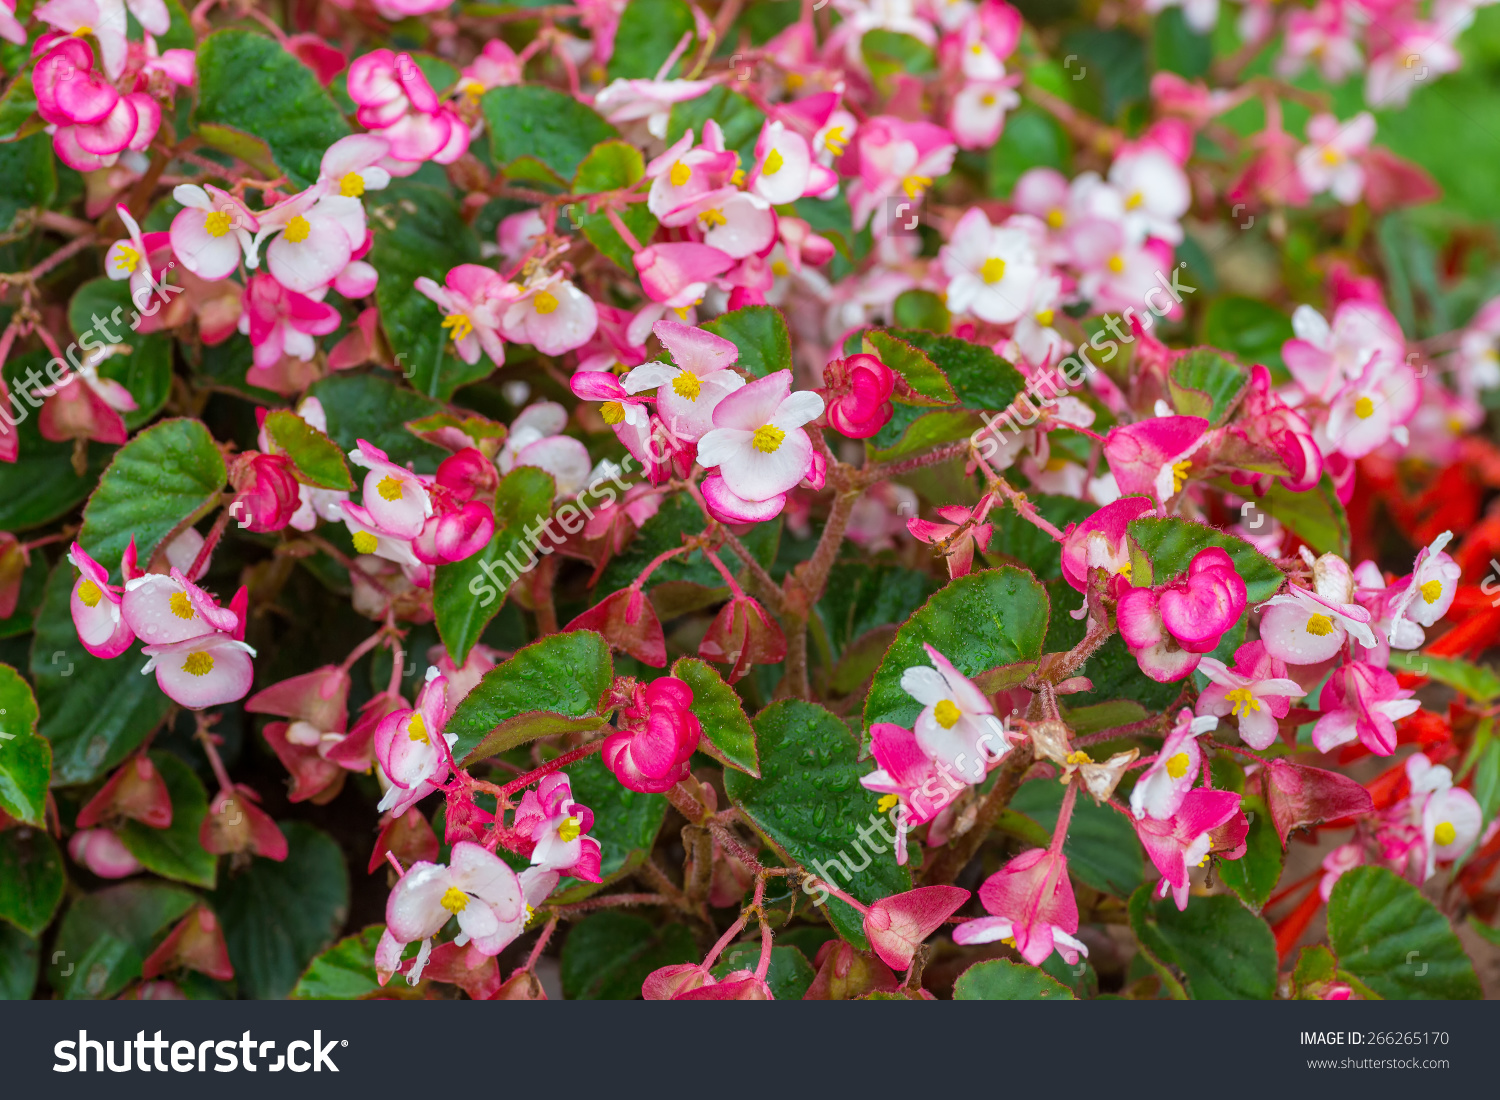 Bicolor Pink Wax Begonia Or Fibrous Stock Photo 266265170.